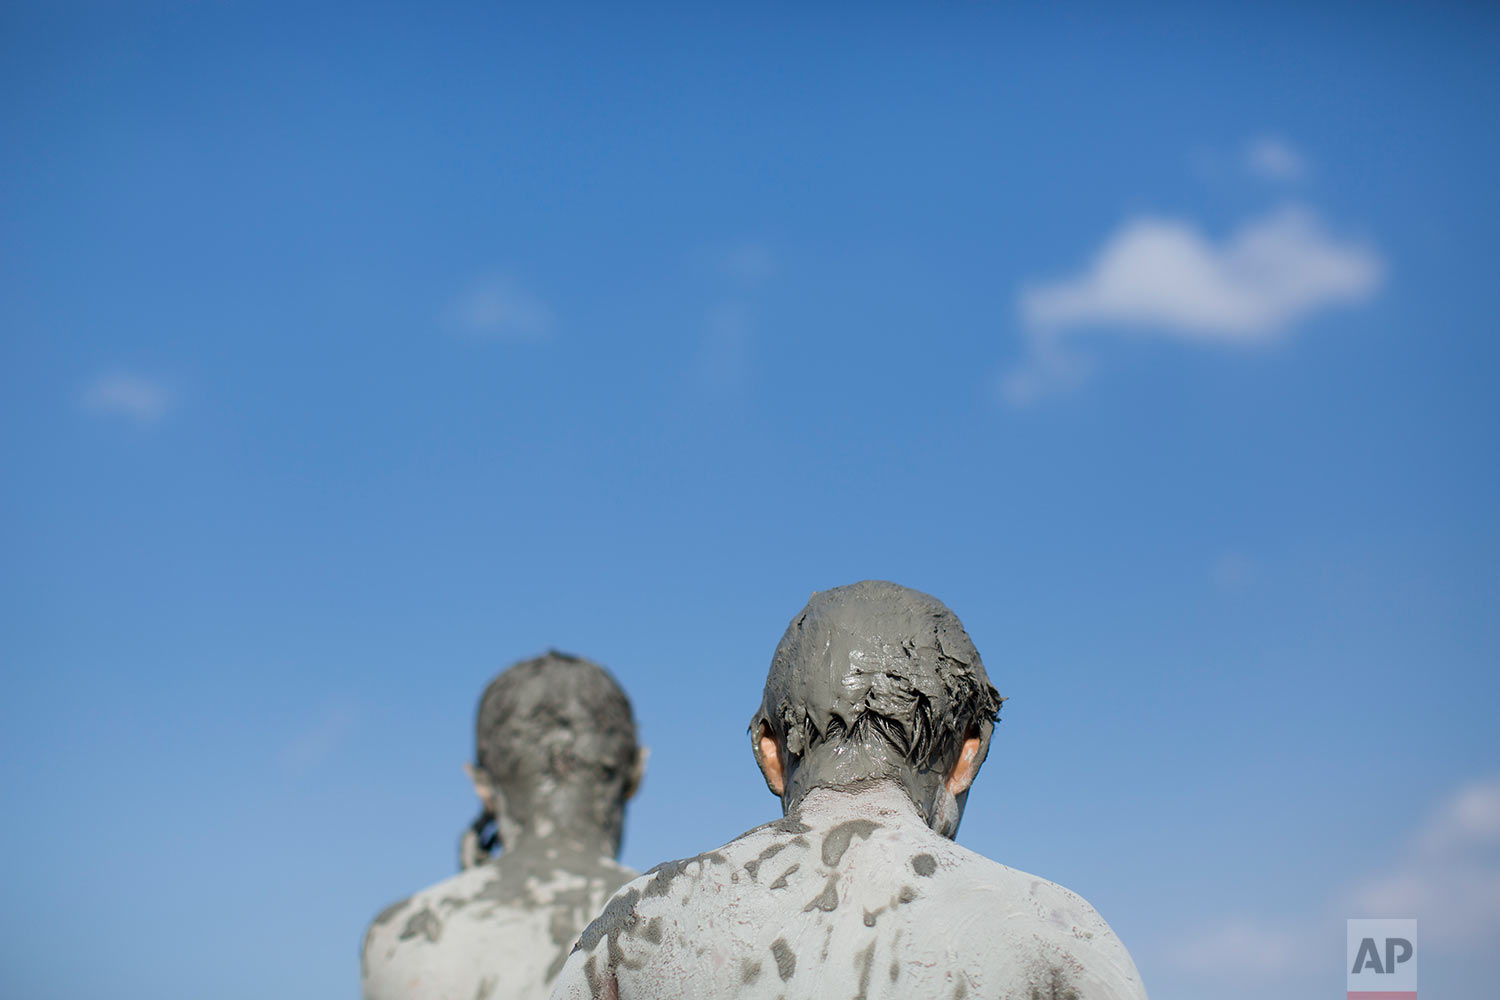 Two Israeli youth covered with mud during the annual Sea of Galilee swim, the oldest and largest popular swimming event, near Tiberias, northern Israel, Saturday, Sept. 16, 2017.(AP Photo/Oded Balilty)